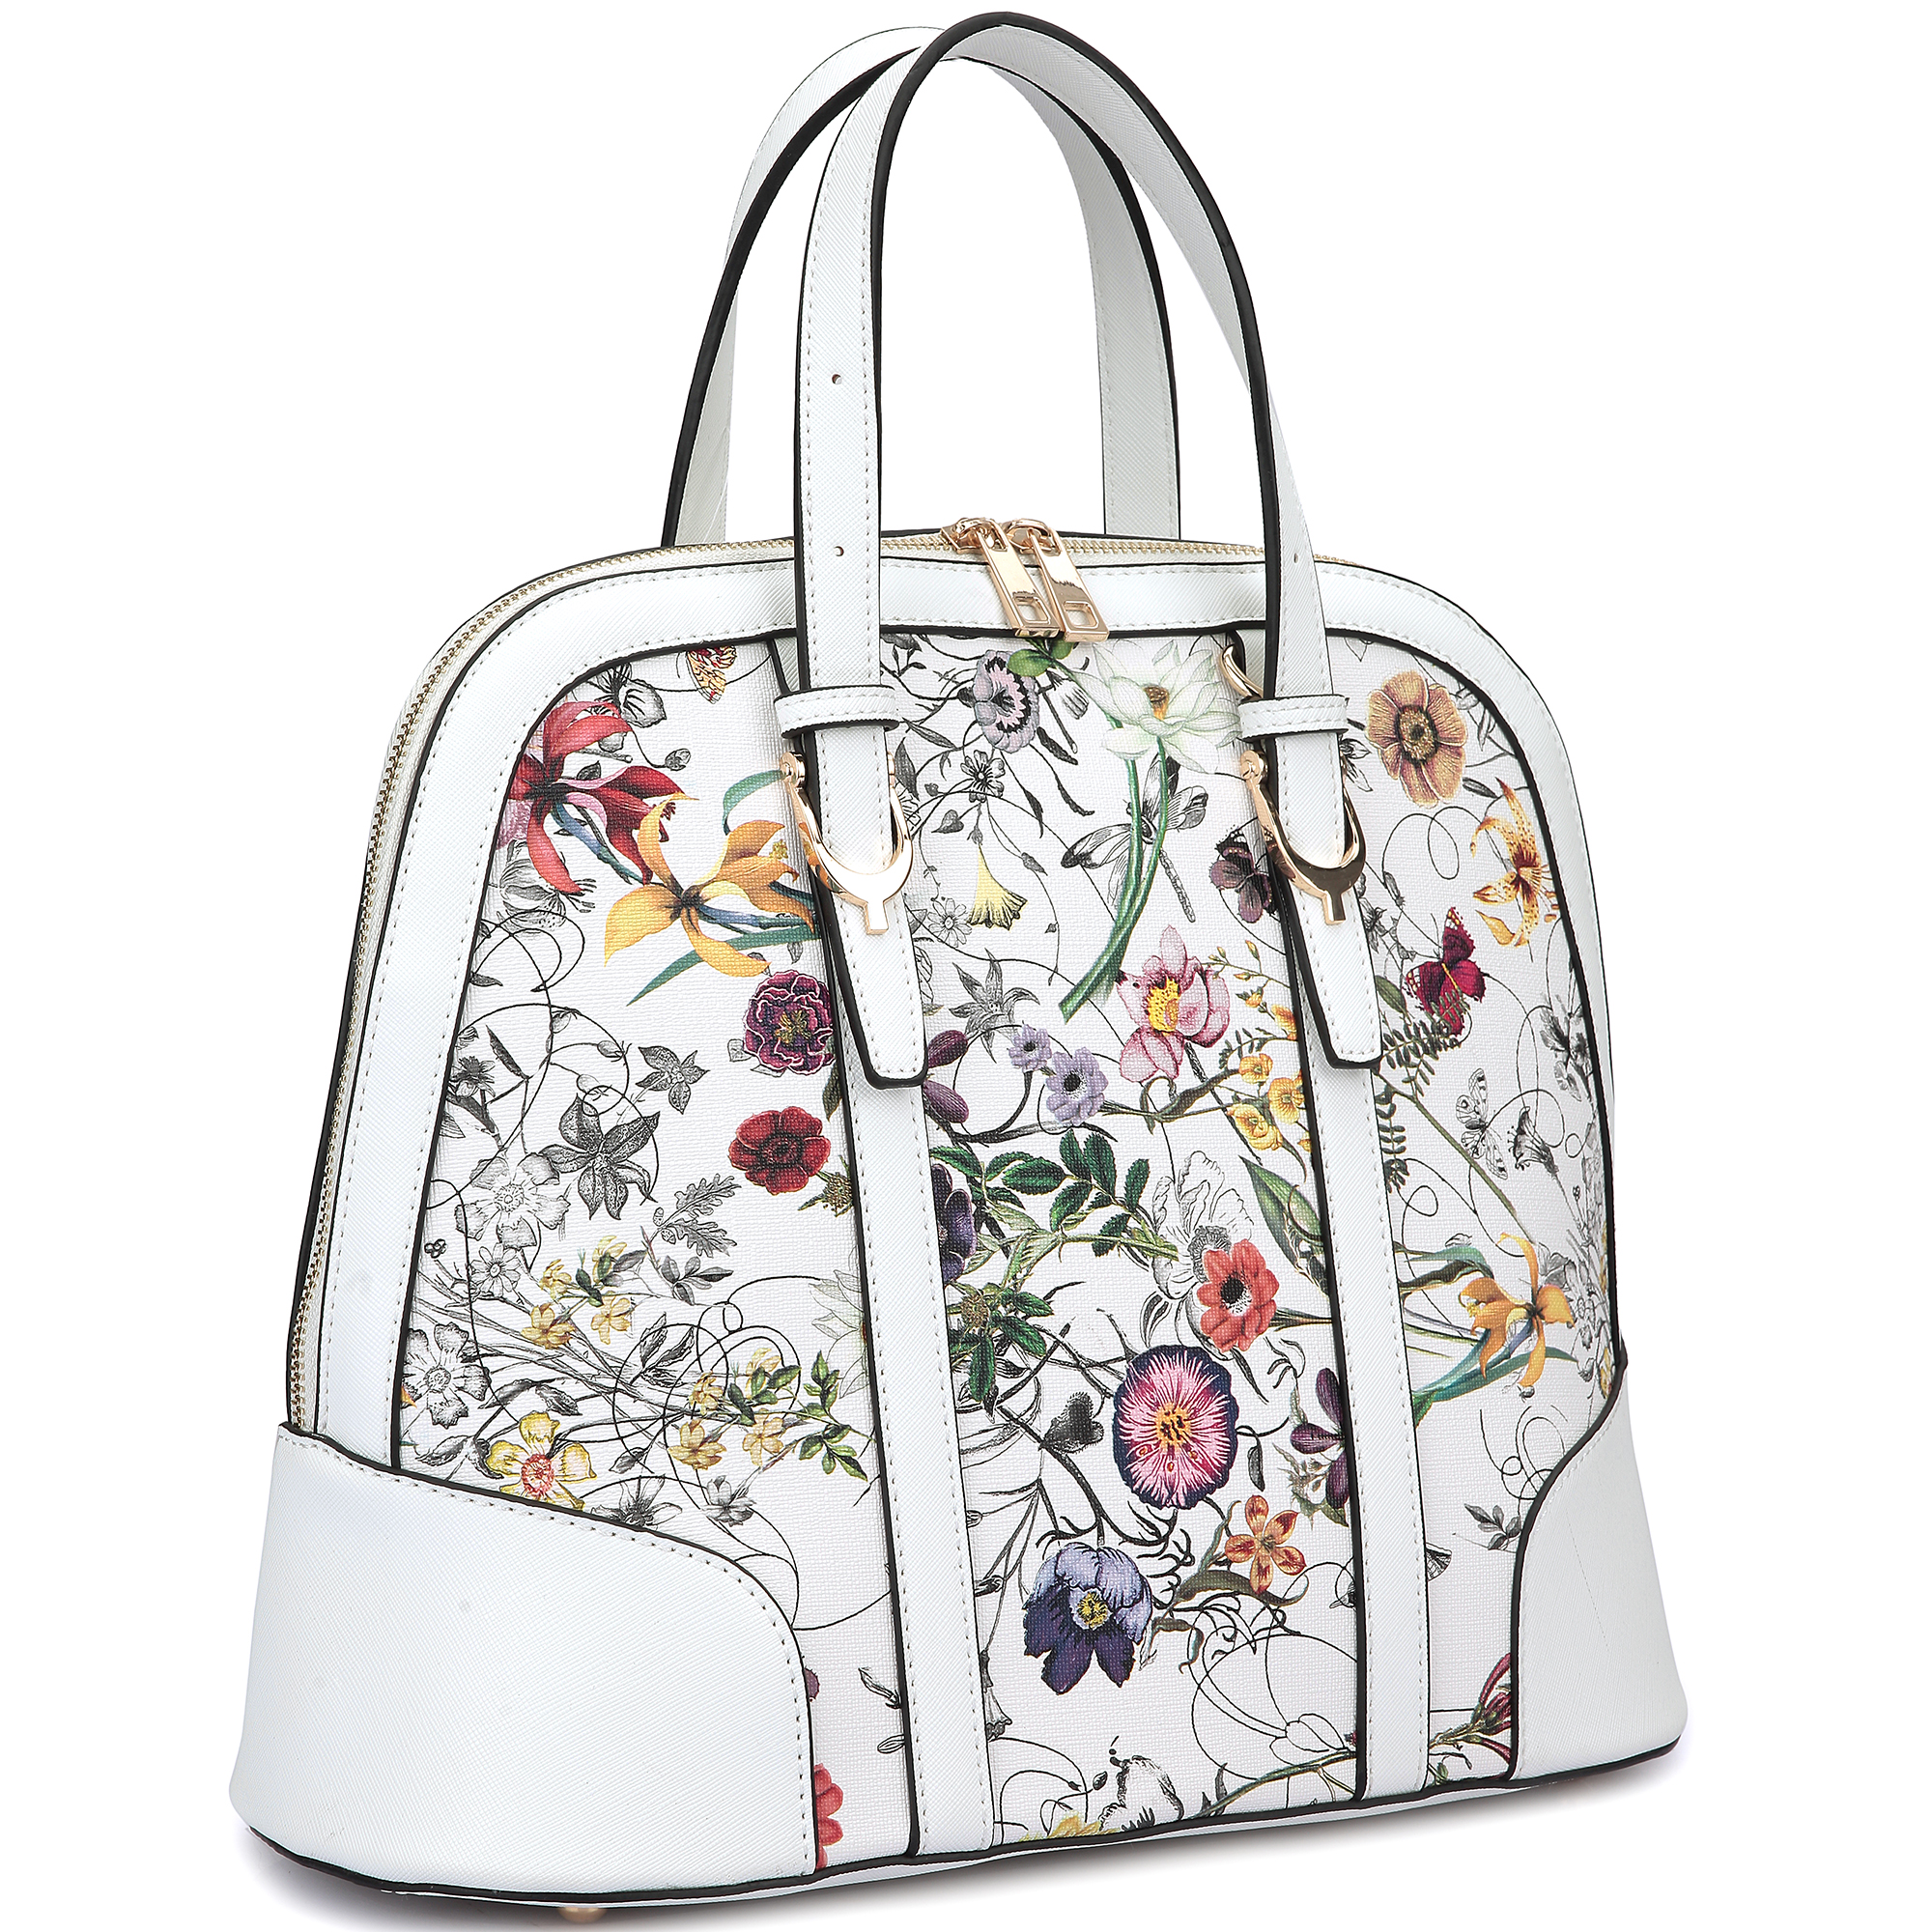 Zip Around Flat Bottom Floral Fashion Satchel